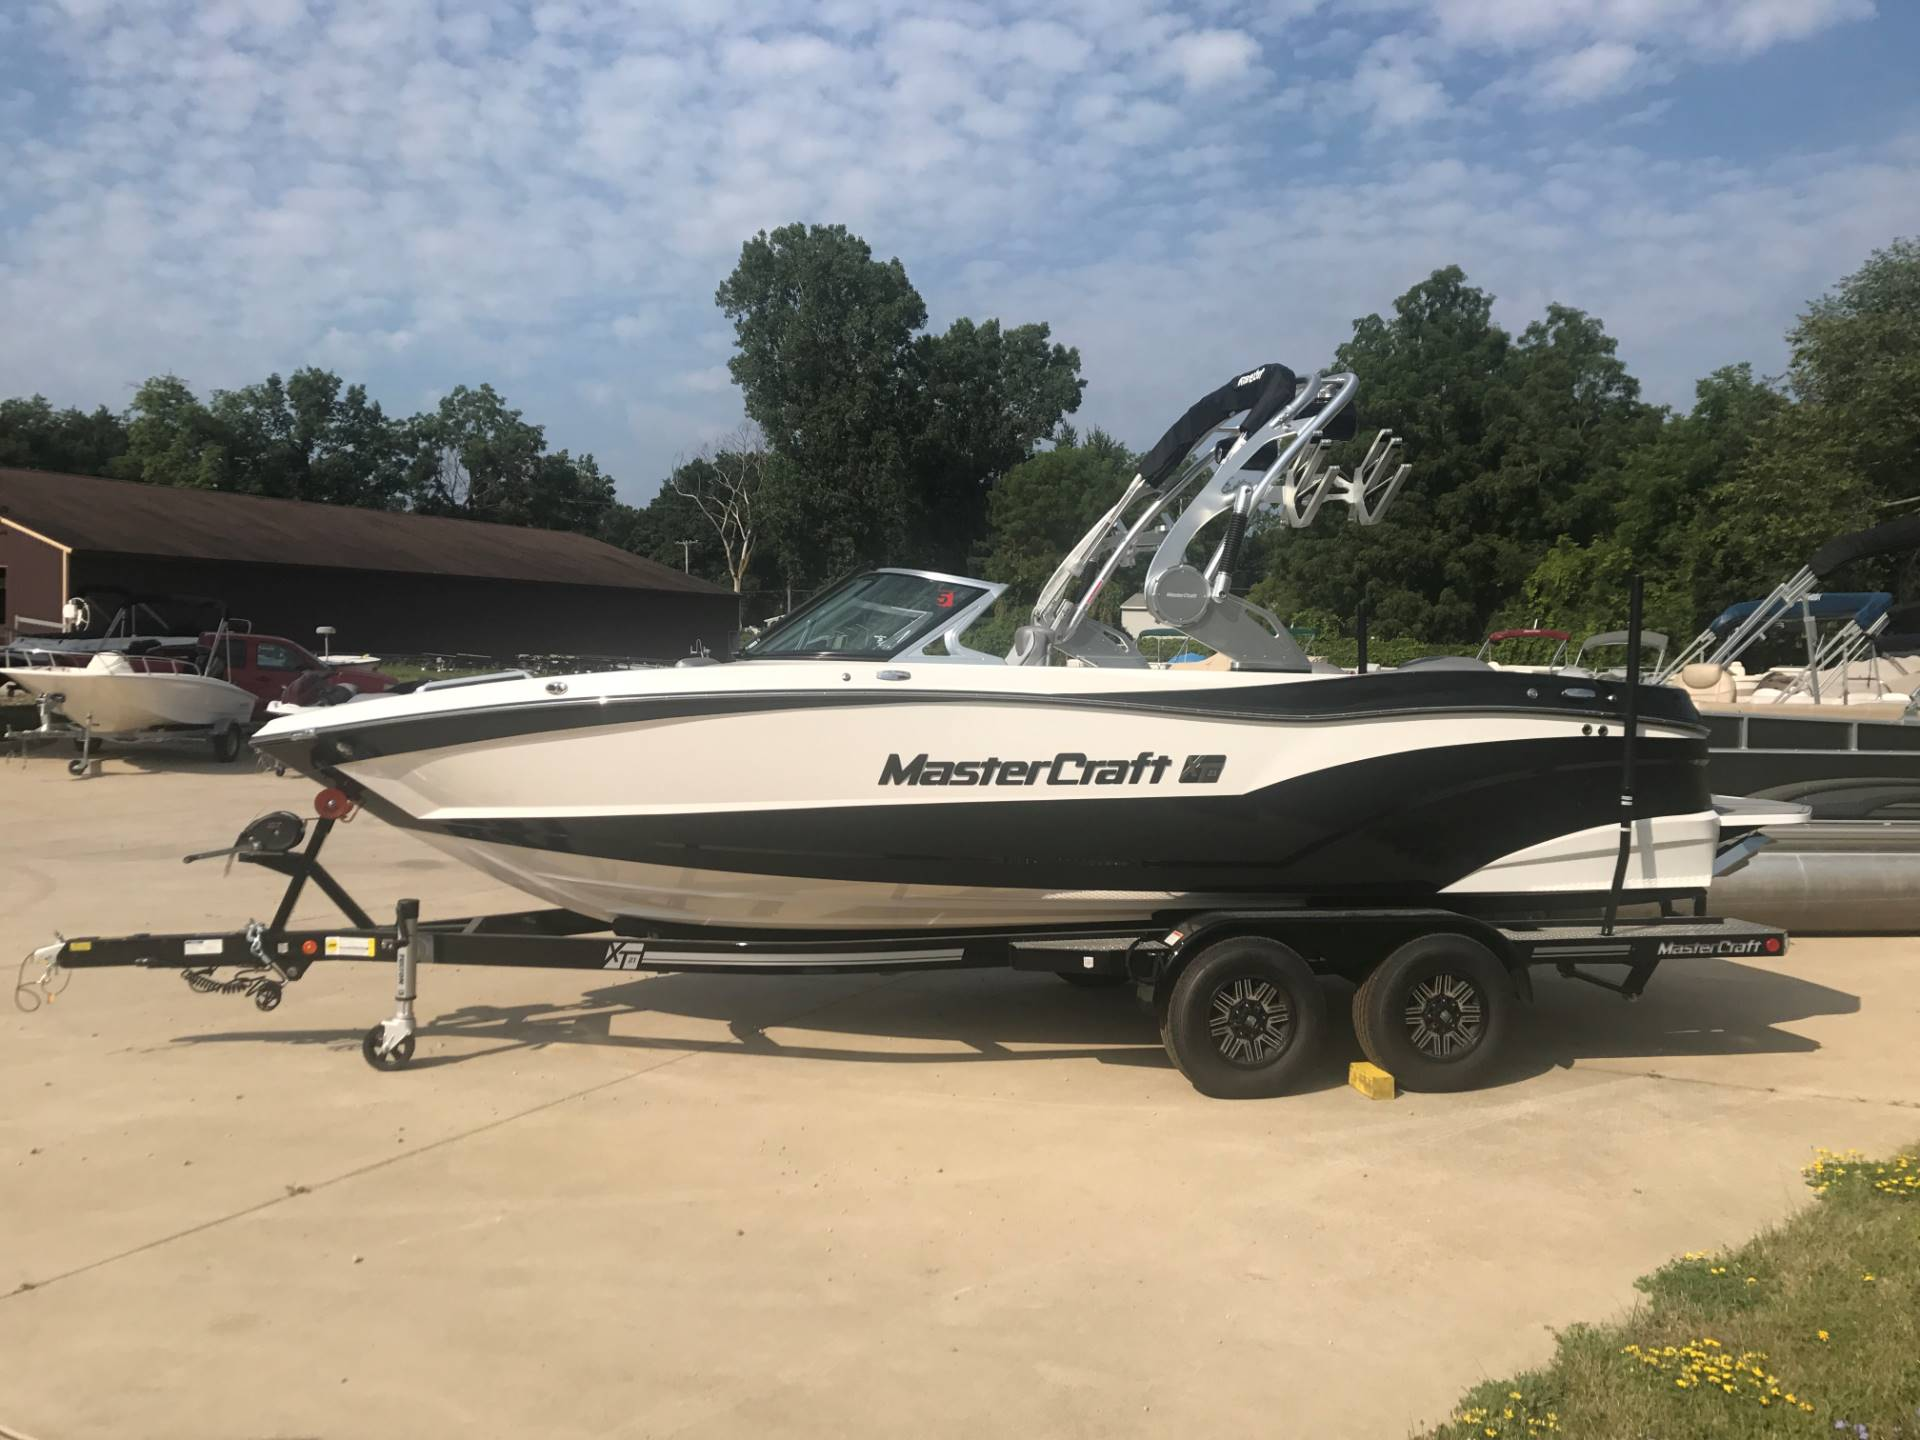 2017 Mastercraft XT21 in Manitou Beach, Michigan